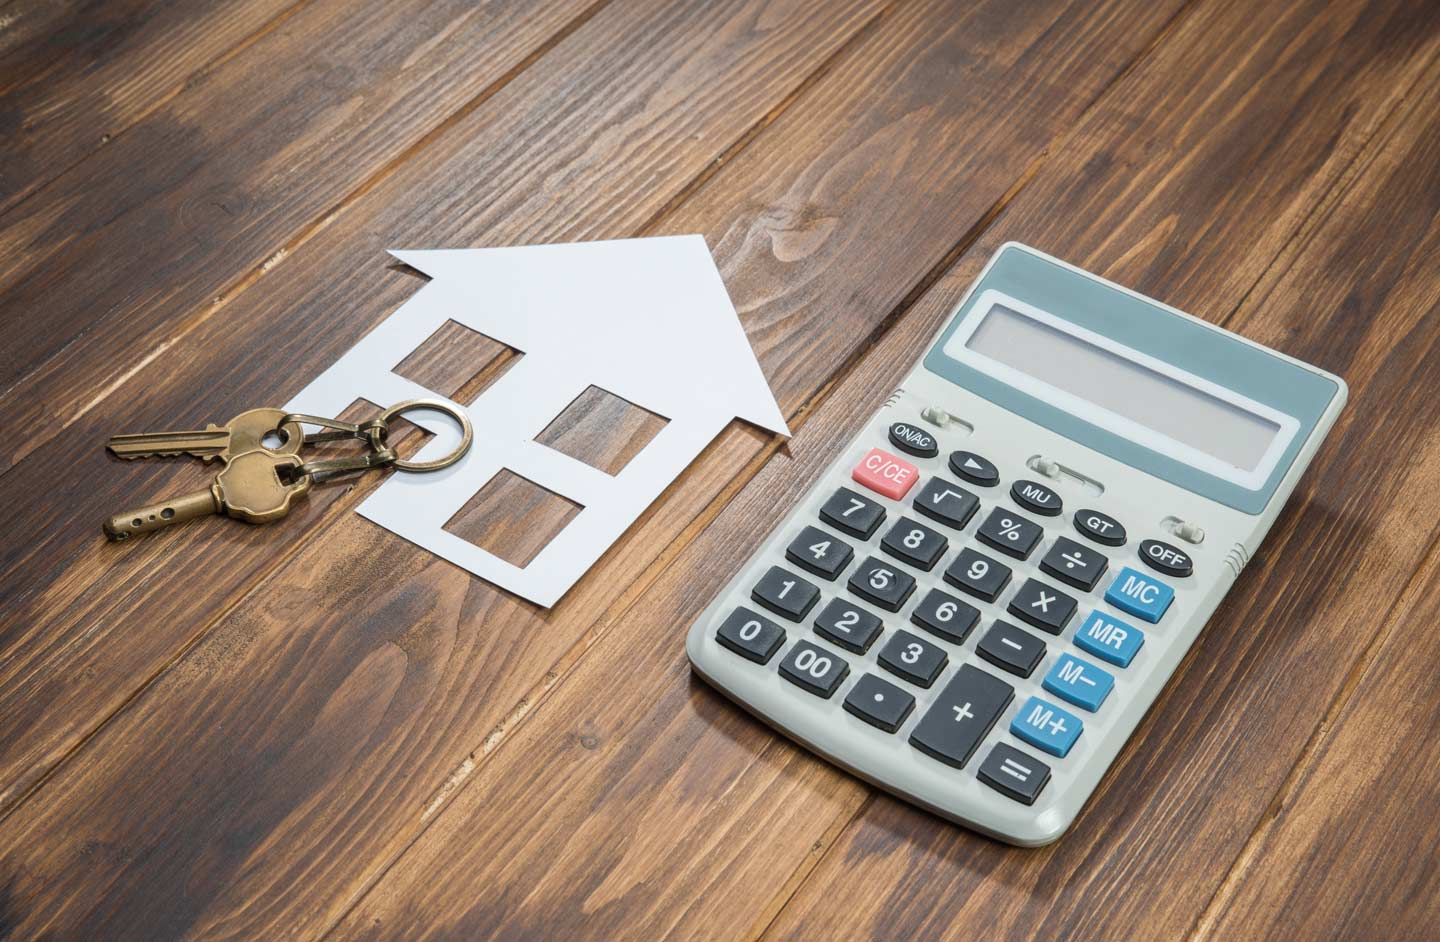 upad_Can-I-Let-My-Property-Without-a-Buy-to-Let-Mortgage.jpg